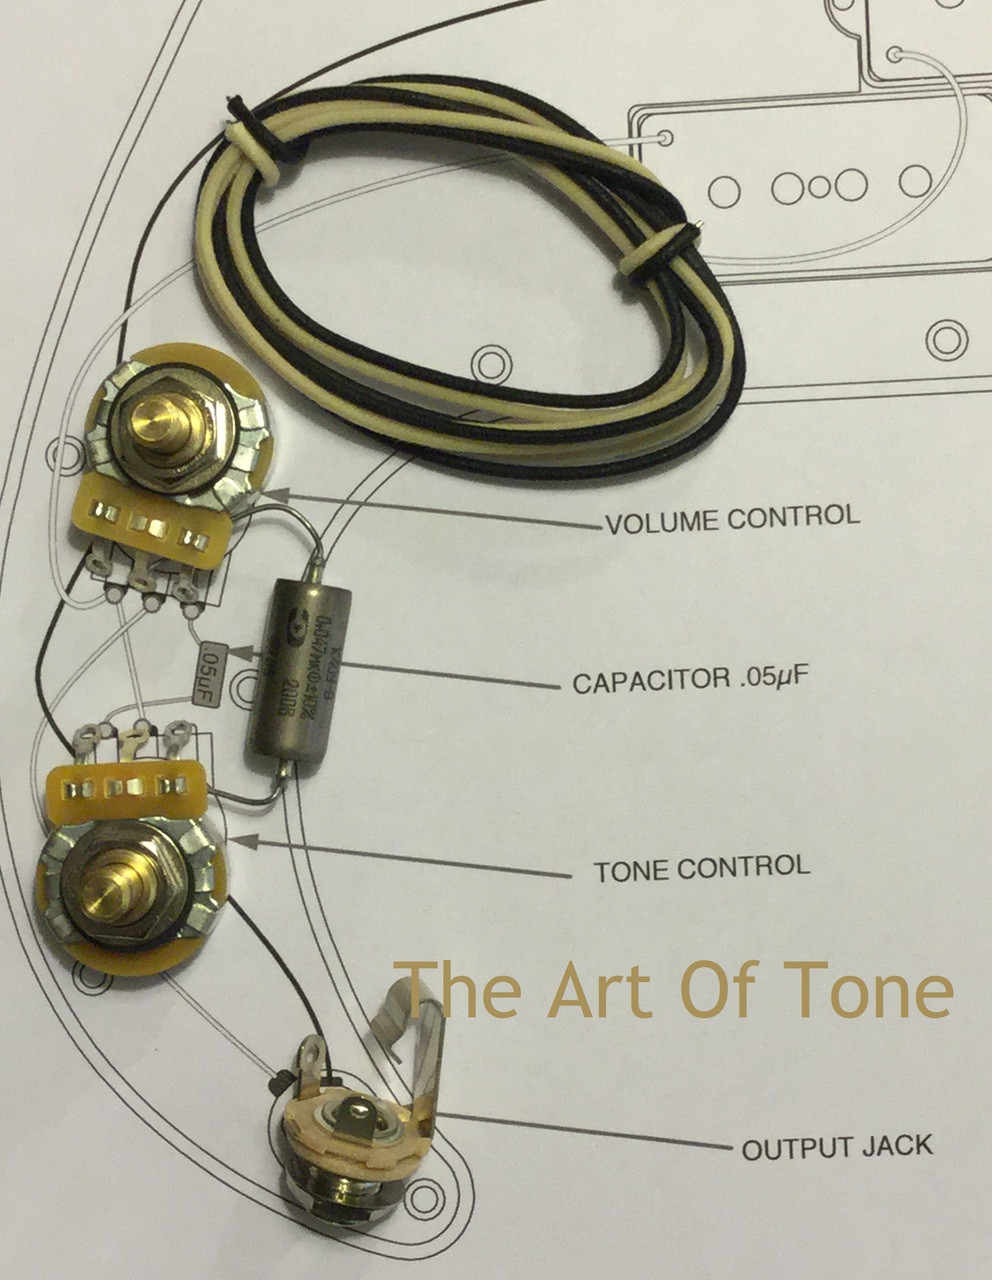 wiring upgrade kit for fender precision bass taot wiring kit fender precision bass k40y 9 047uf 200 cap st the art of tone [ 992 x 1280 Pixel ]